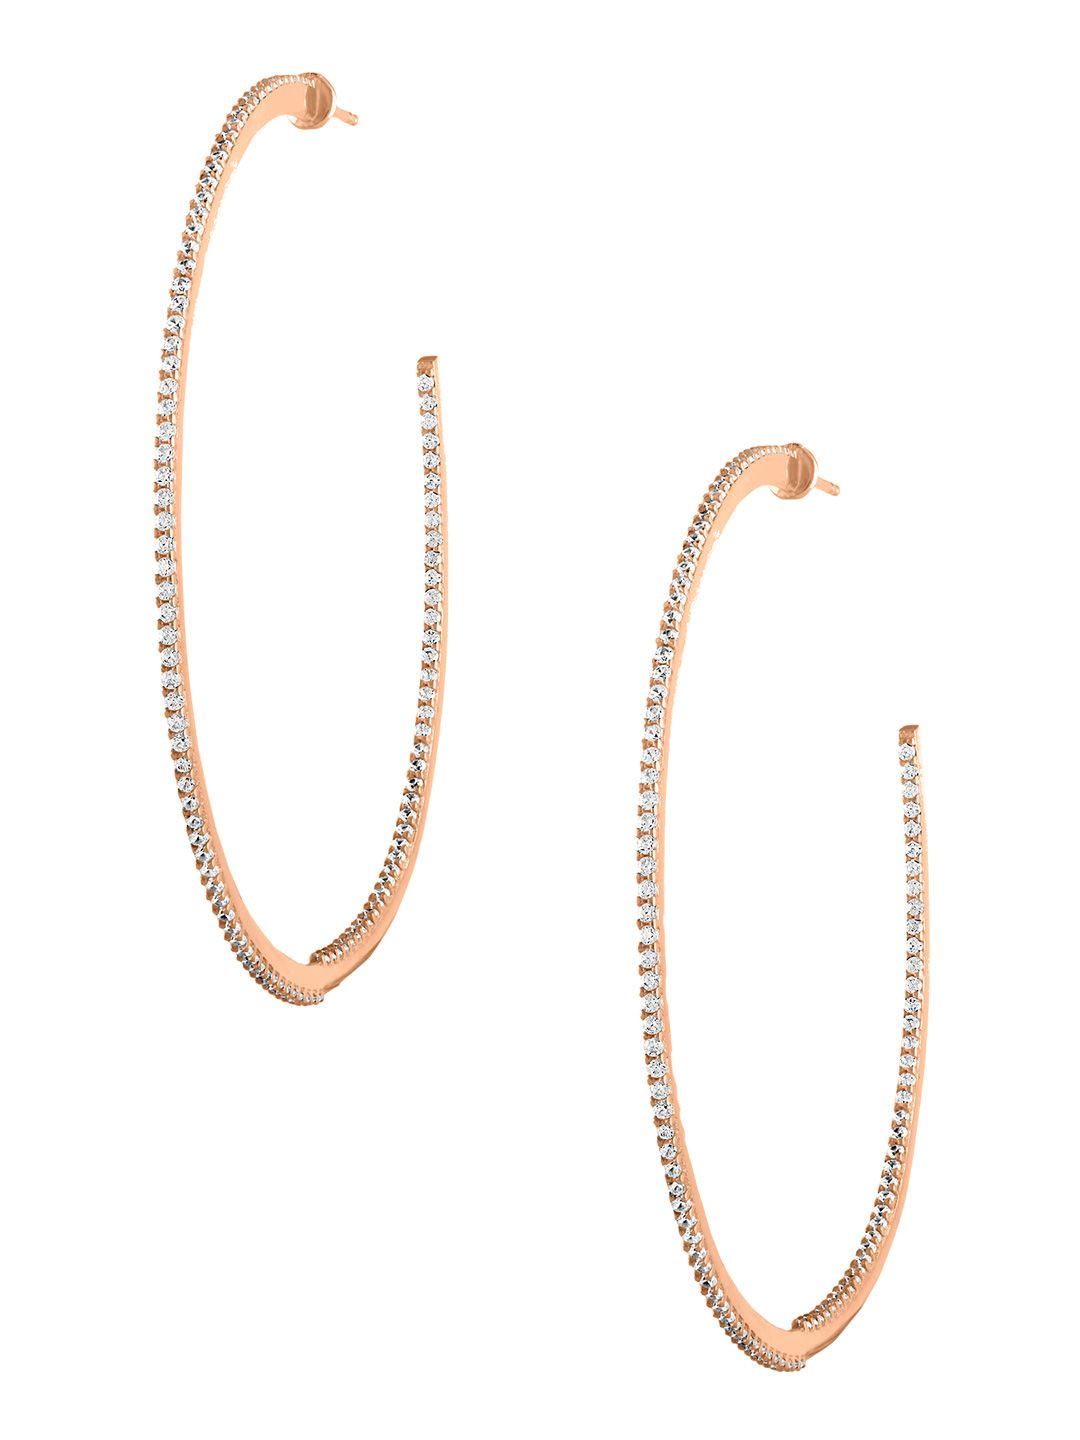 ca6db292b SPHERA MILANO WOMEN'S 18K ROSE GOLD-PLATED STERLING SILVER INSIDE OUT LARGE  HOOP EARRINGS. #spheramilano #